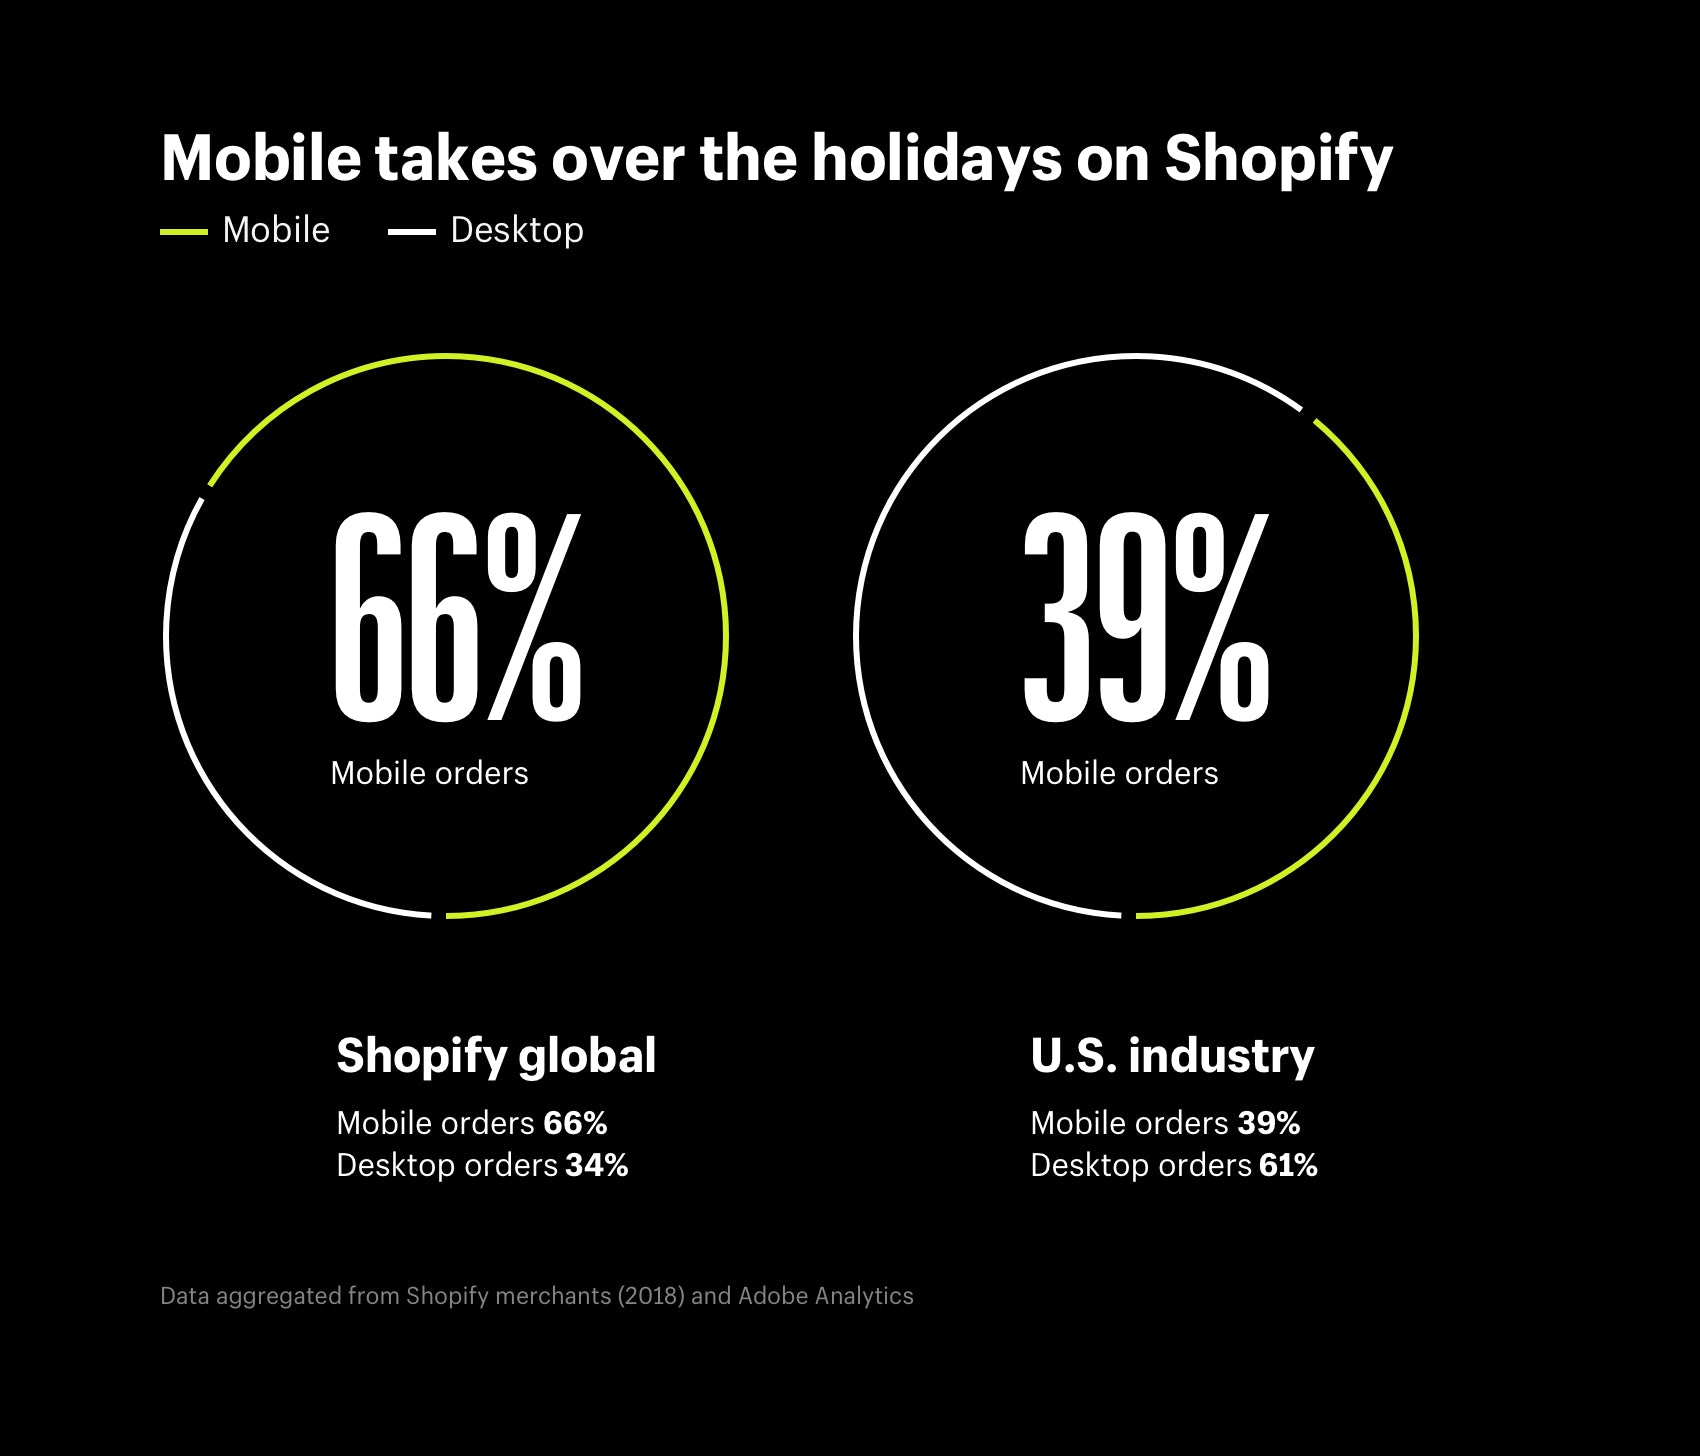 Mobile takes over online holiday shopping on Shopify